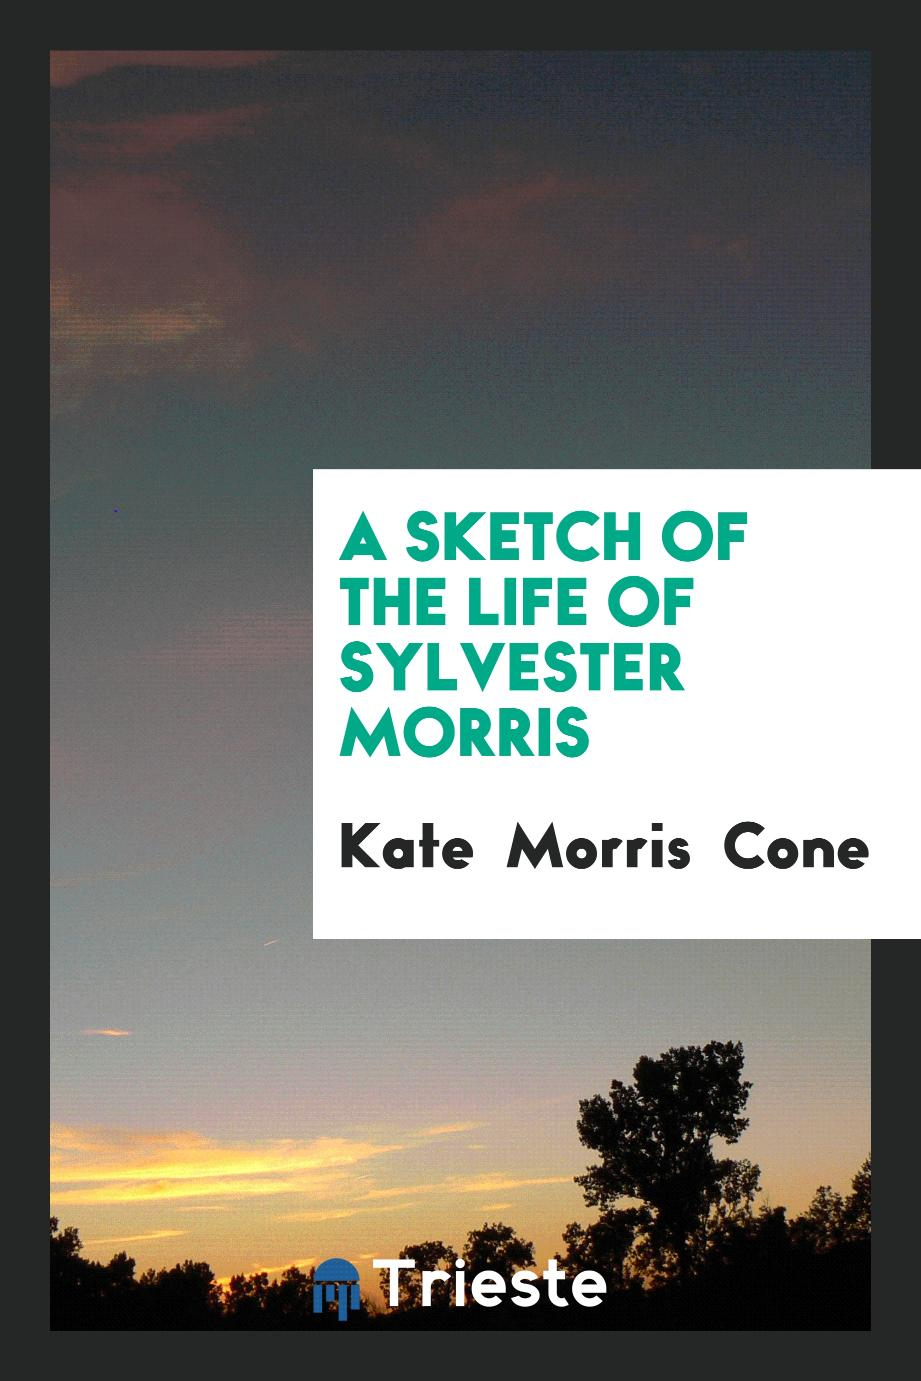 Kate Morris  Cone - A Sketch of the Life of Sylvester Morris